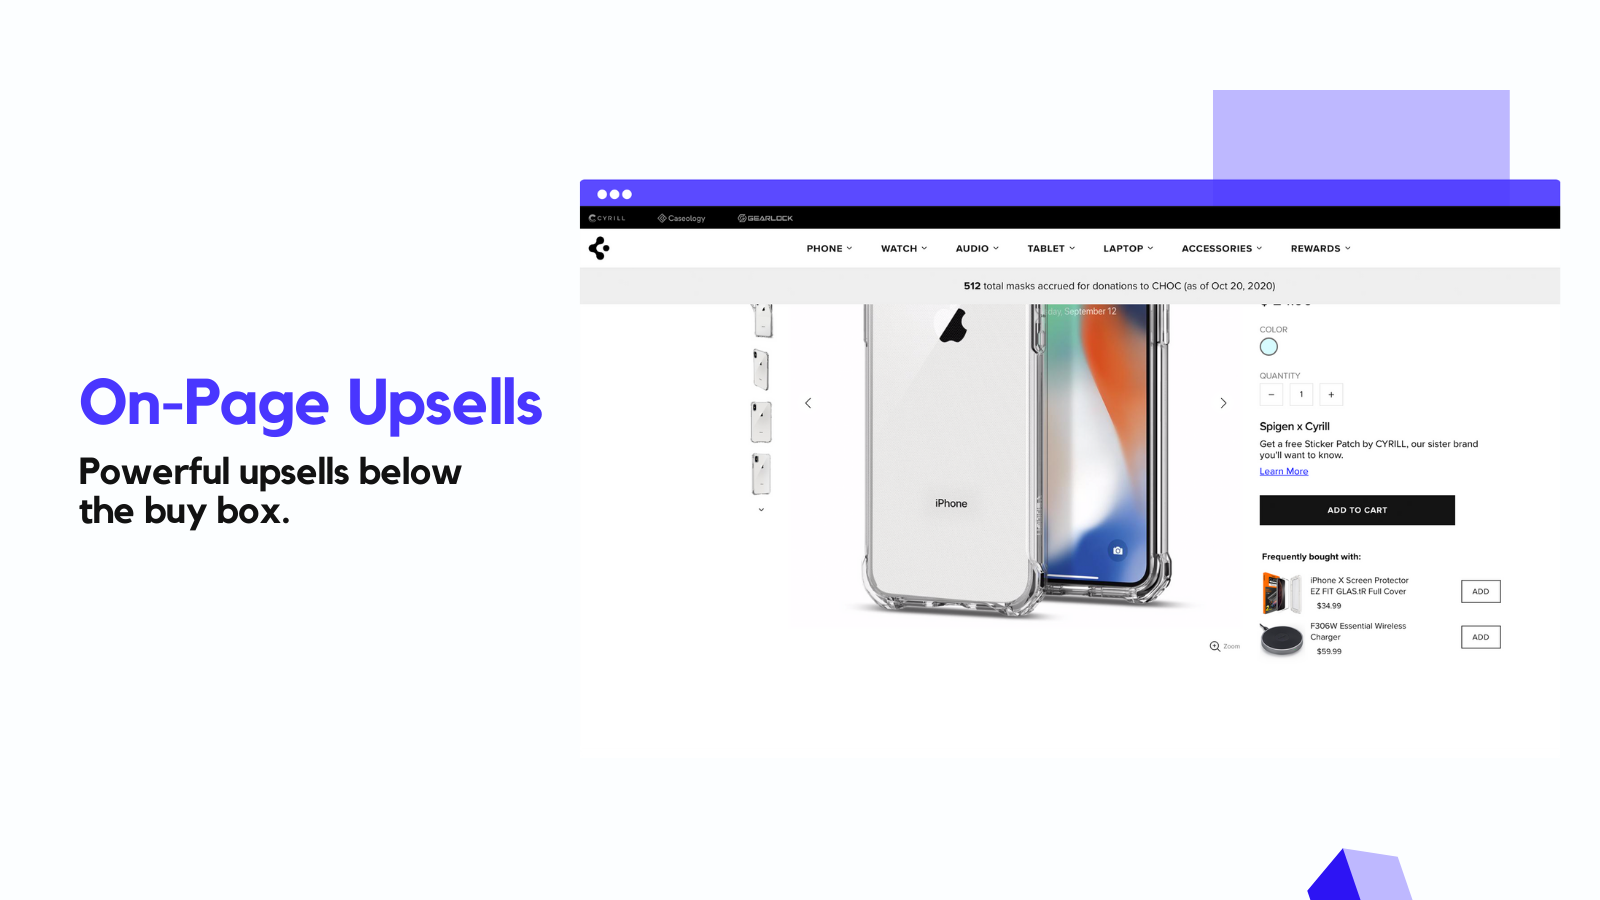 Best On-Page Upsell